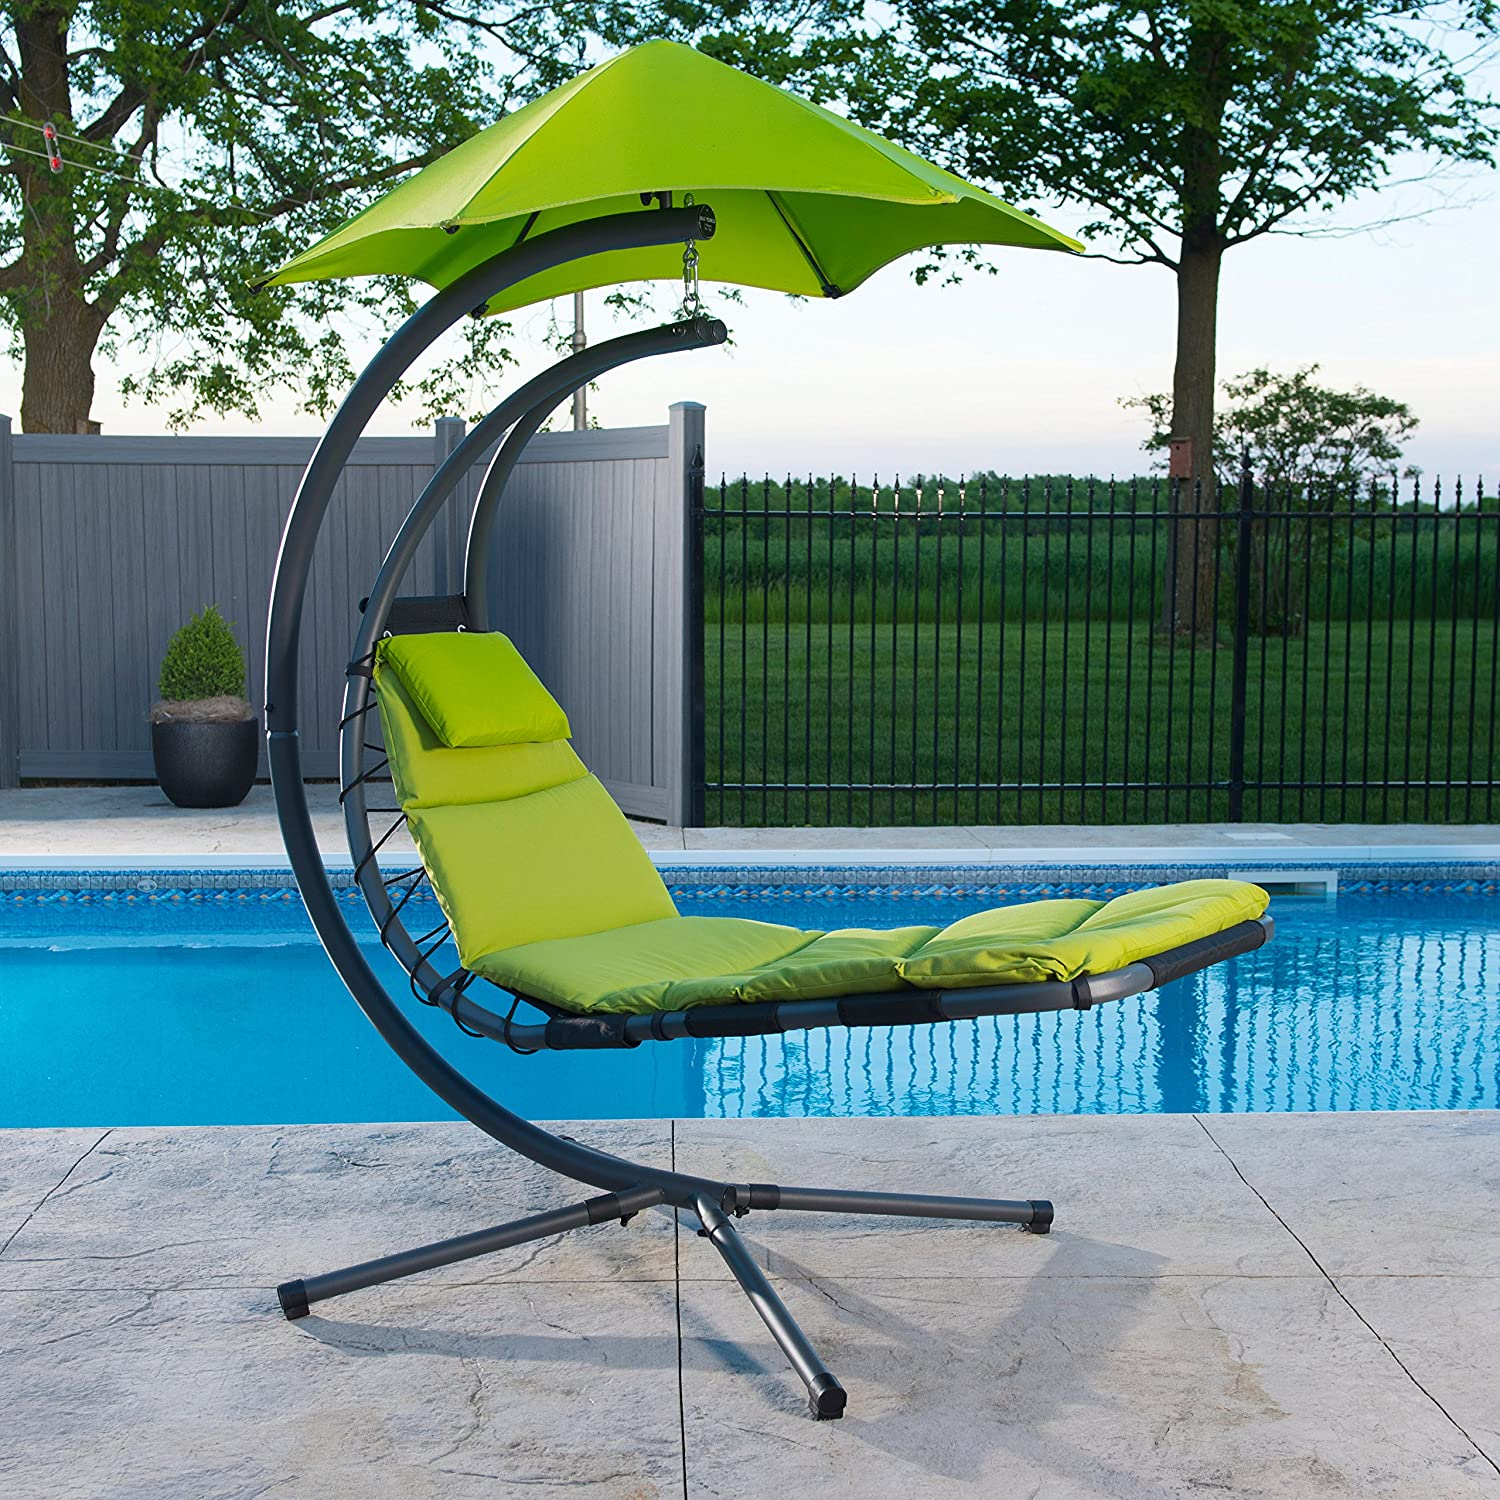 Vivere Original Dream Helicopter Chair - Green Apple